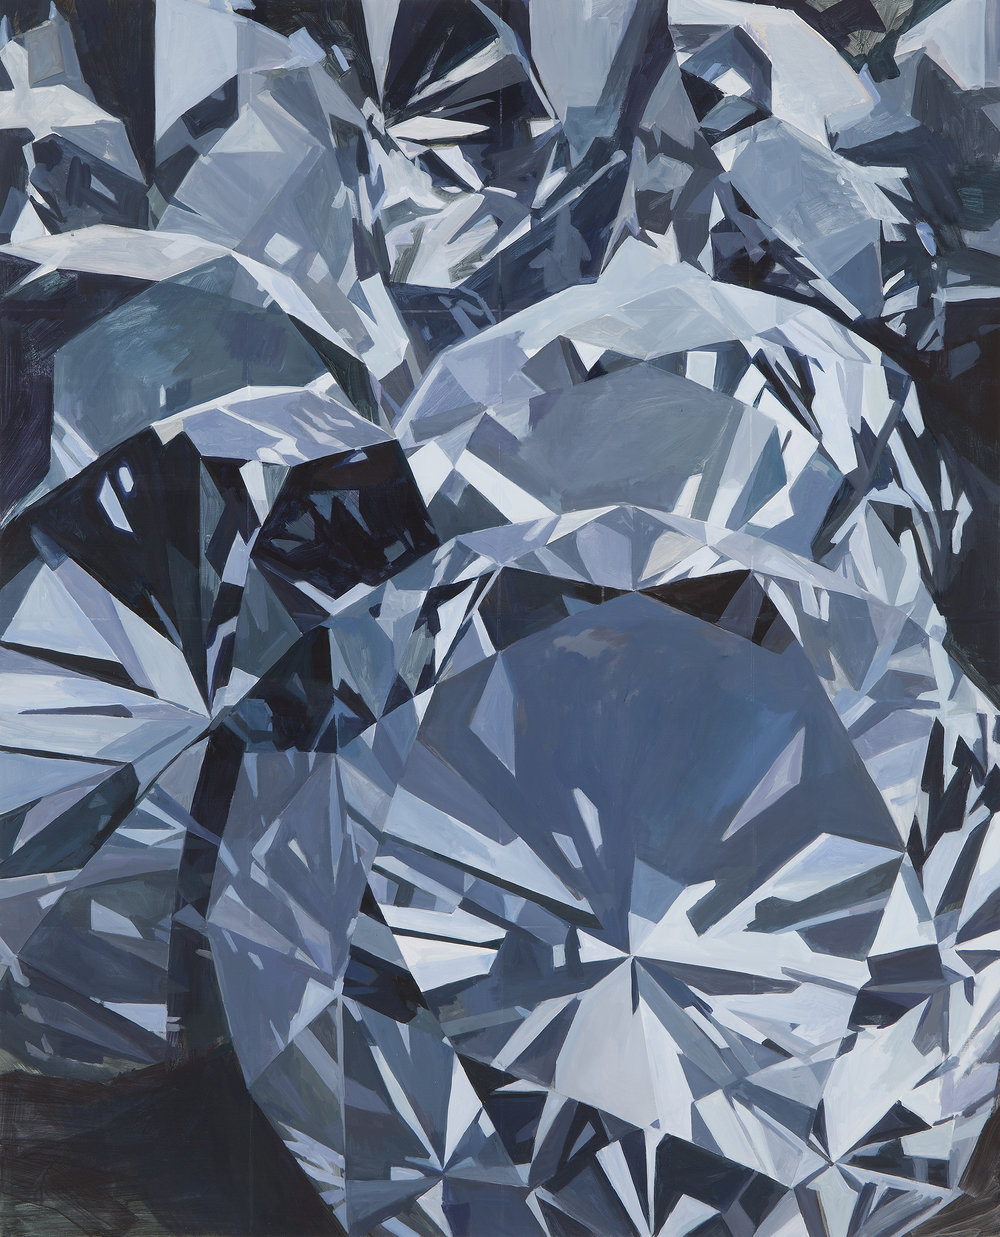 Chloe Keyoung, Diamonds are Forever, 2016